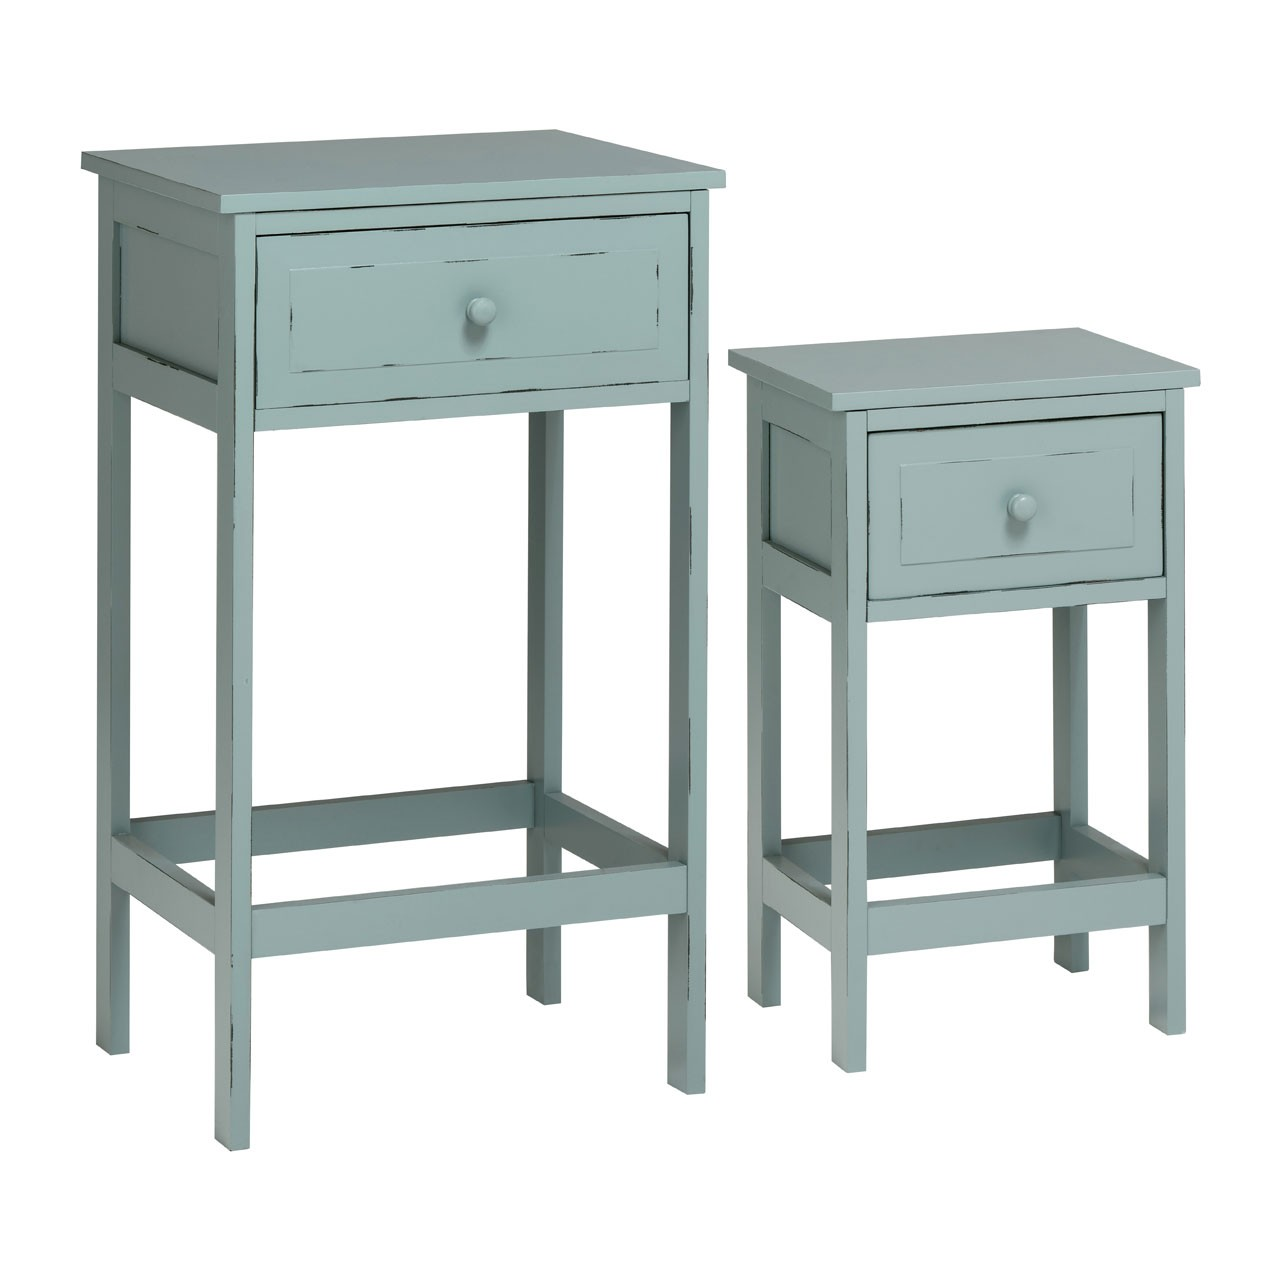 Chatelet Tables, Set of 2, Blue Grey